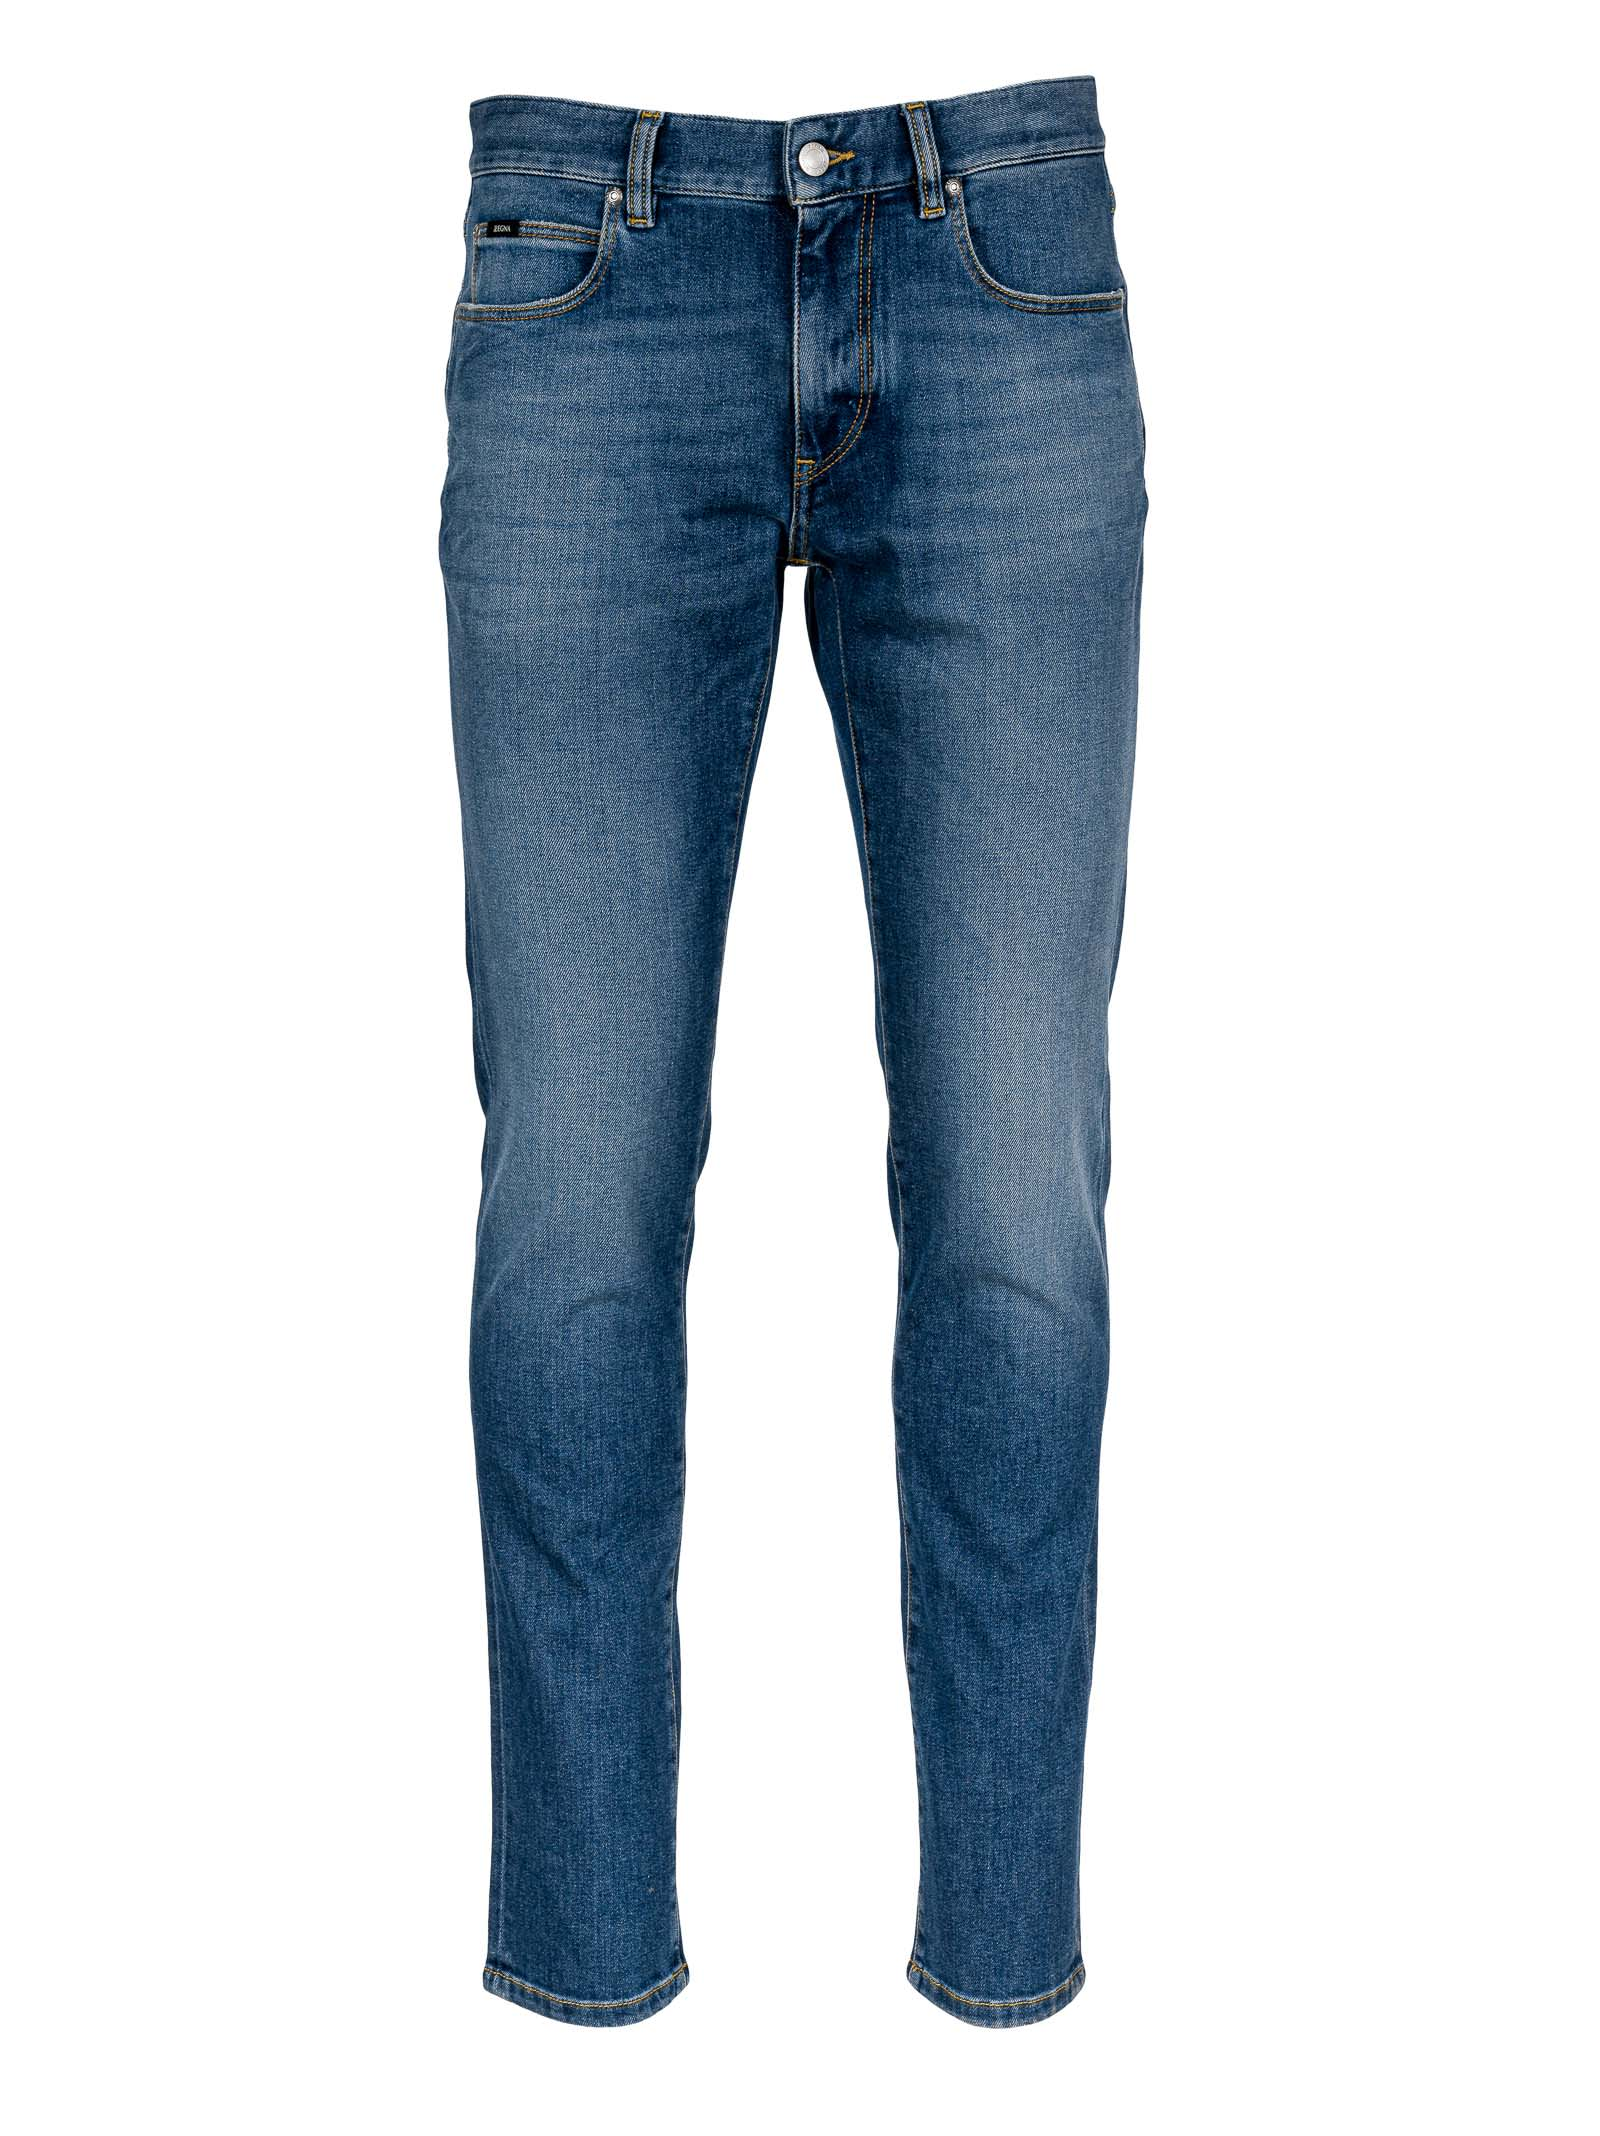 Z-zegna Stretch Cotton 5-pocket Denim